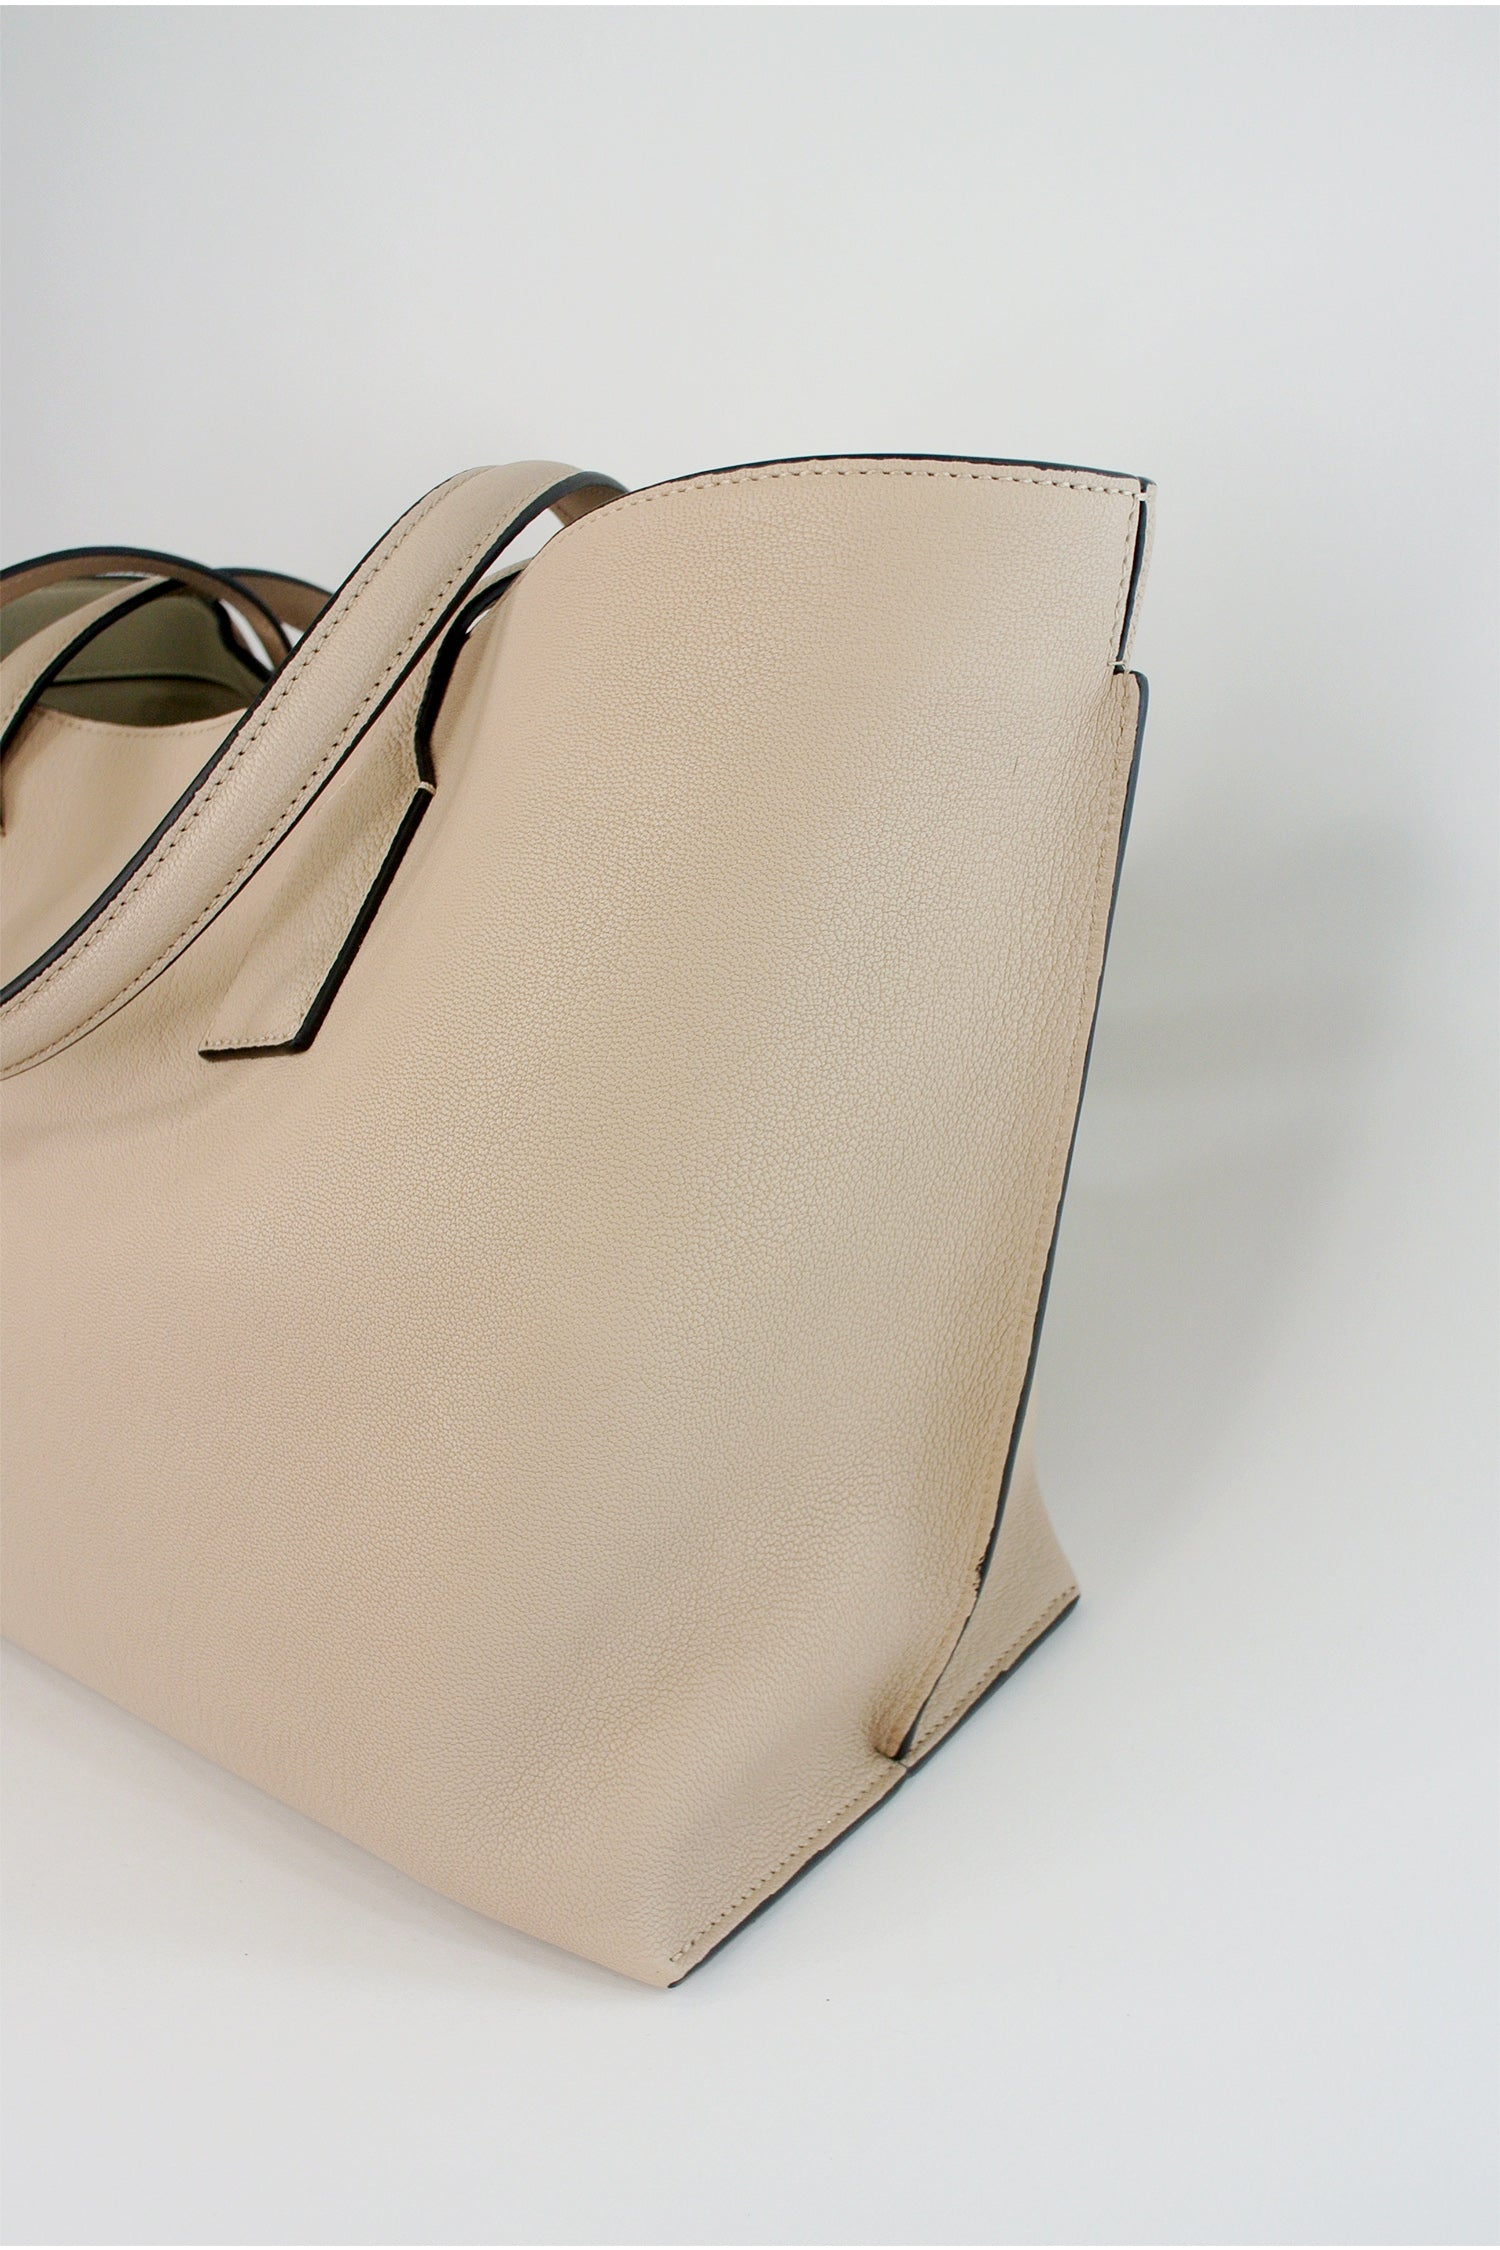 Loewe T Shopper Tote (New With Tags)